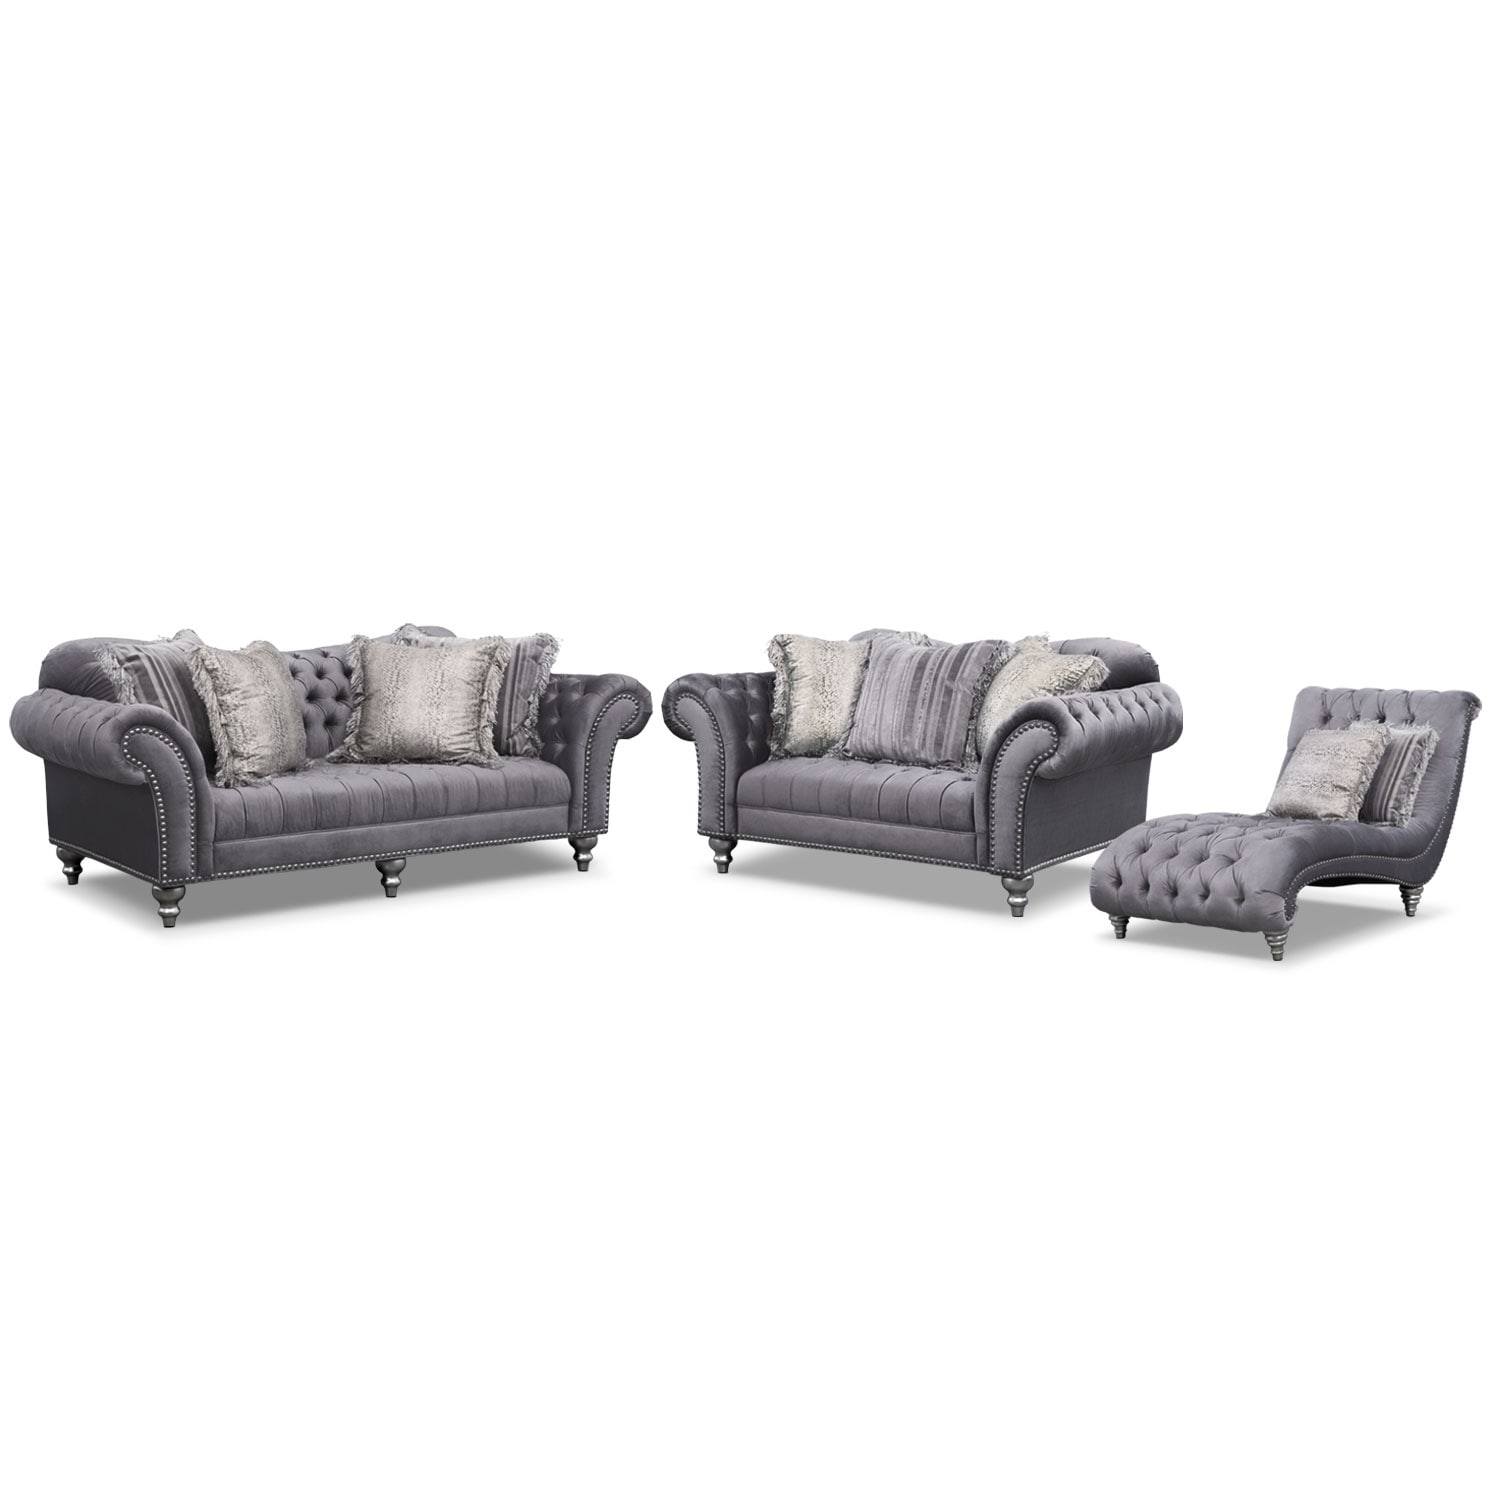 Sofa loveseat and chaise set hodan sofa chaise ashley for Chaise lounge couch set